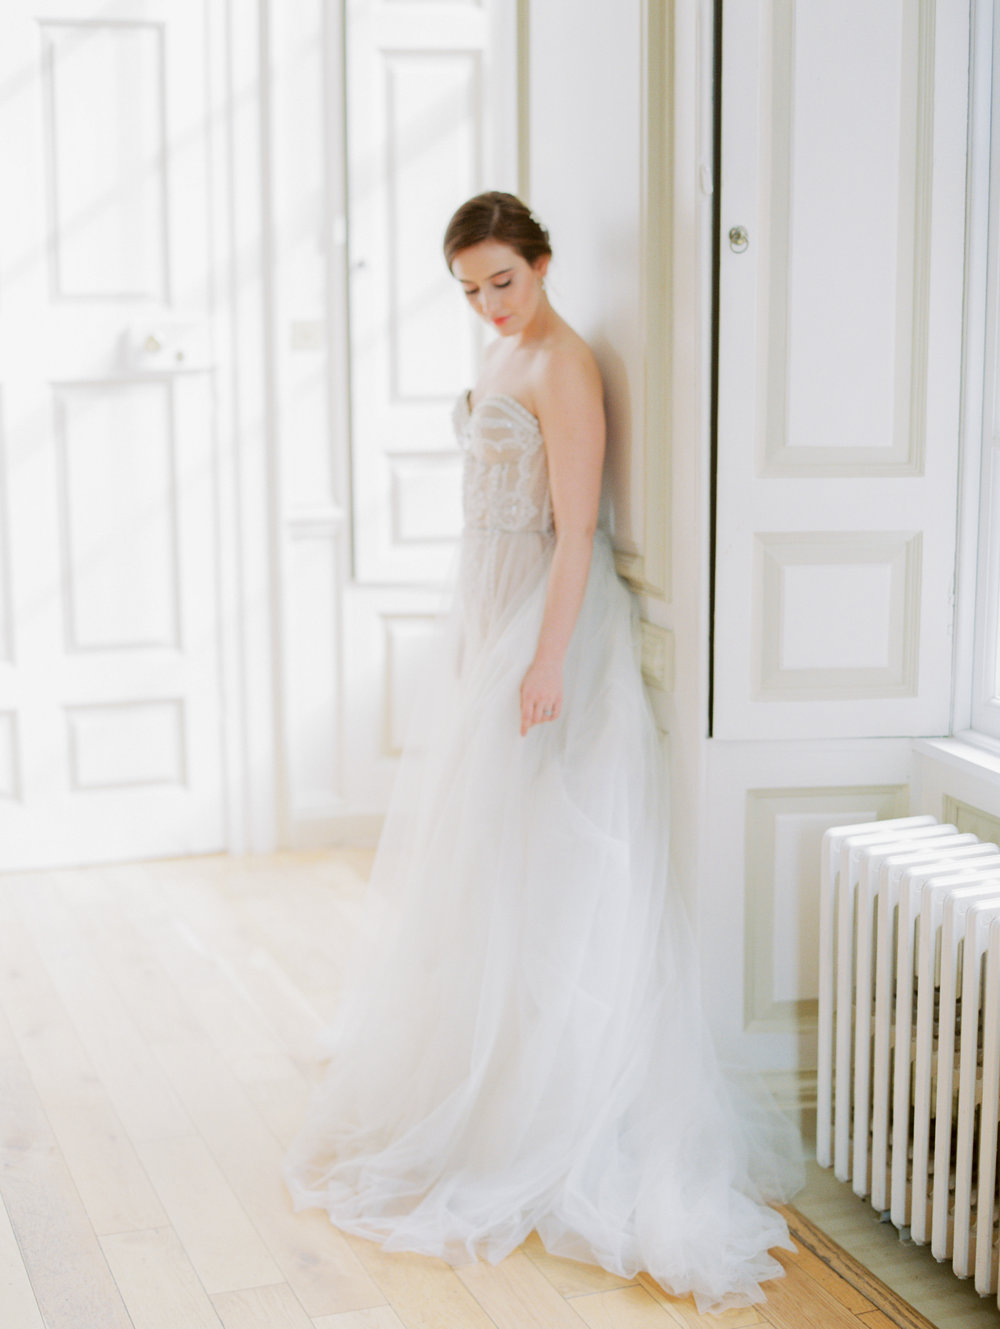 The Timeless Stylist-Elegant and Romantic Wedding Styling-Classic Bride